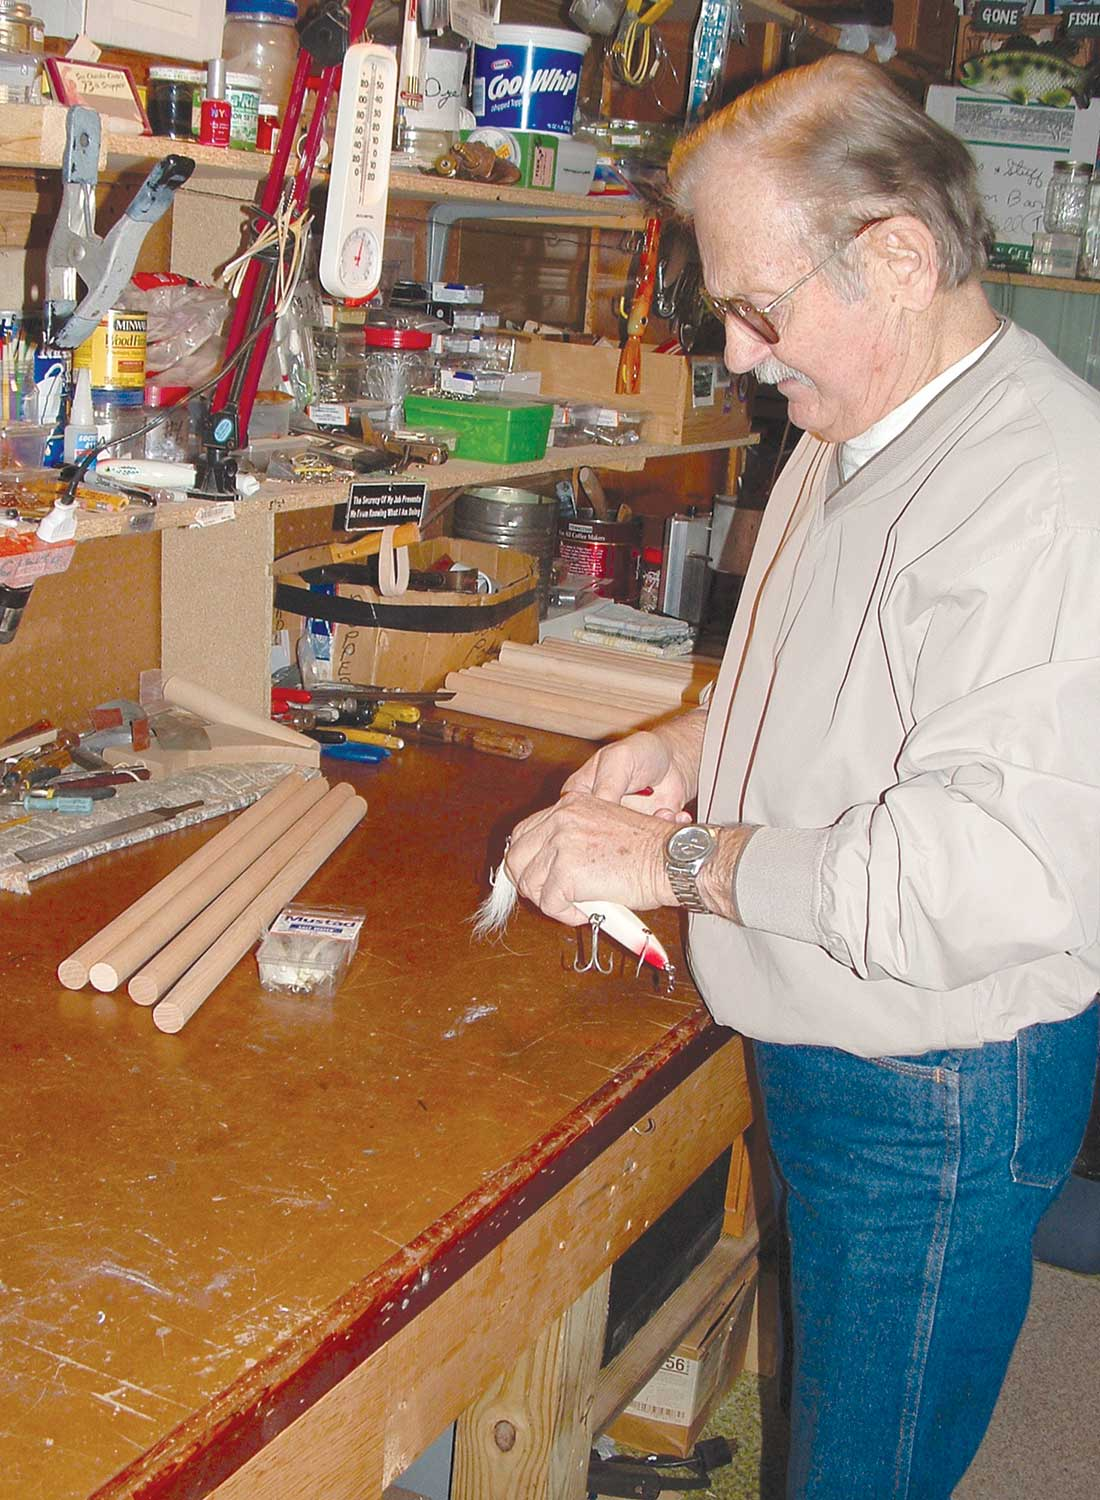 Seen here at home in his workshop, Charlie Cinto